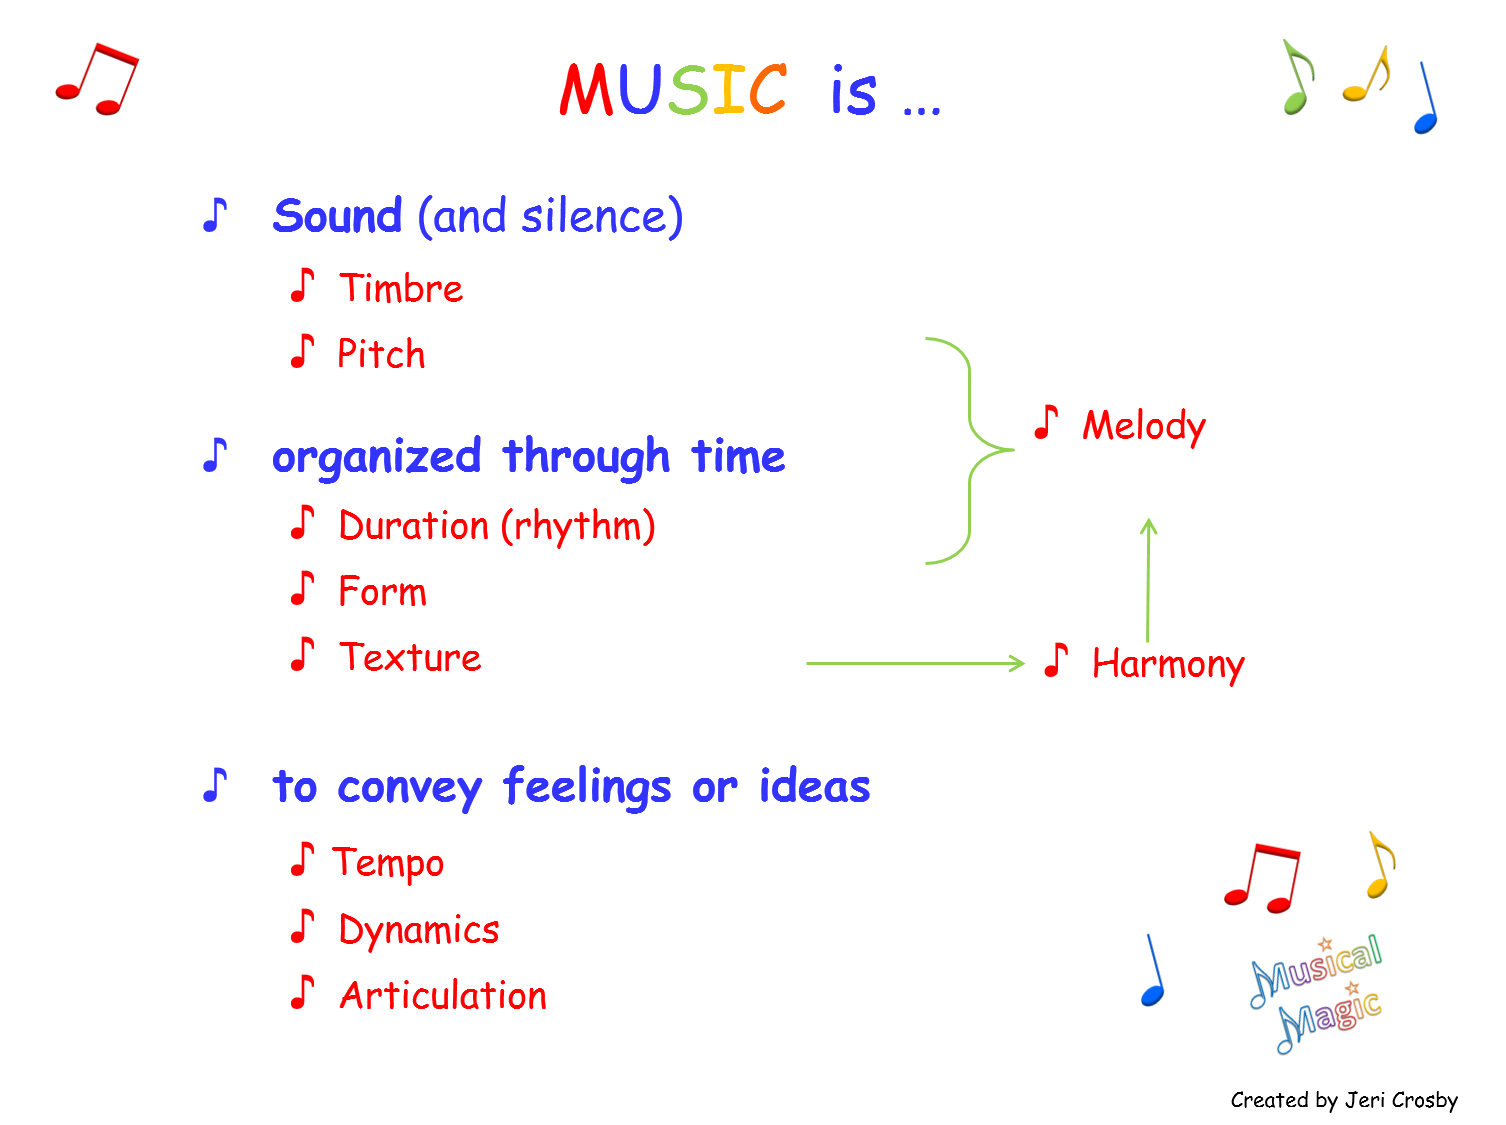 MyMusicalMagic: Introduction to the Elements of Music